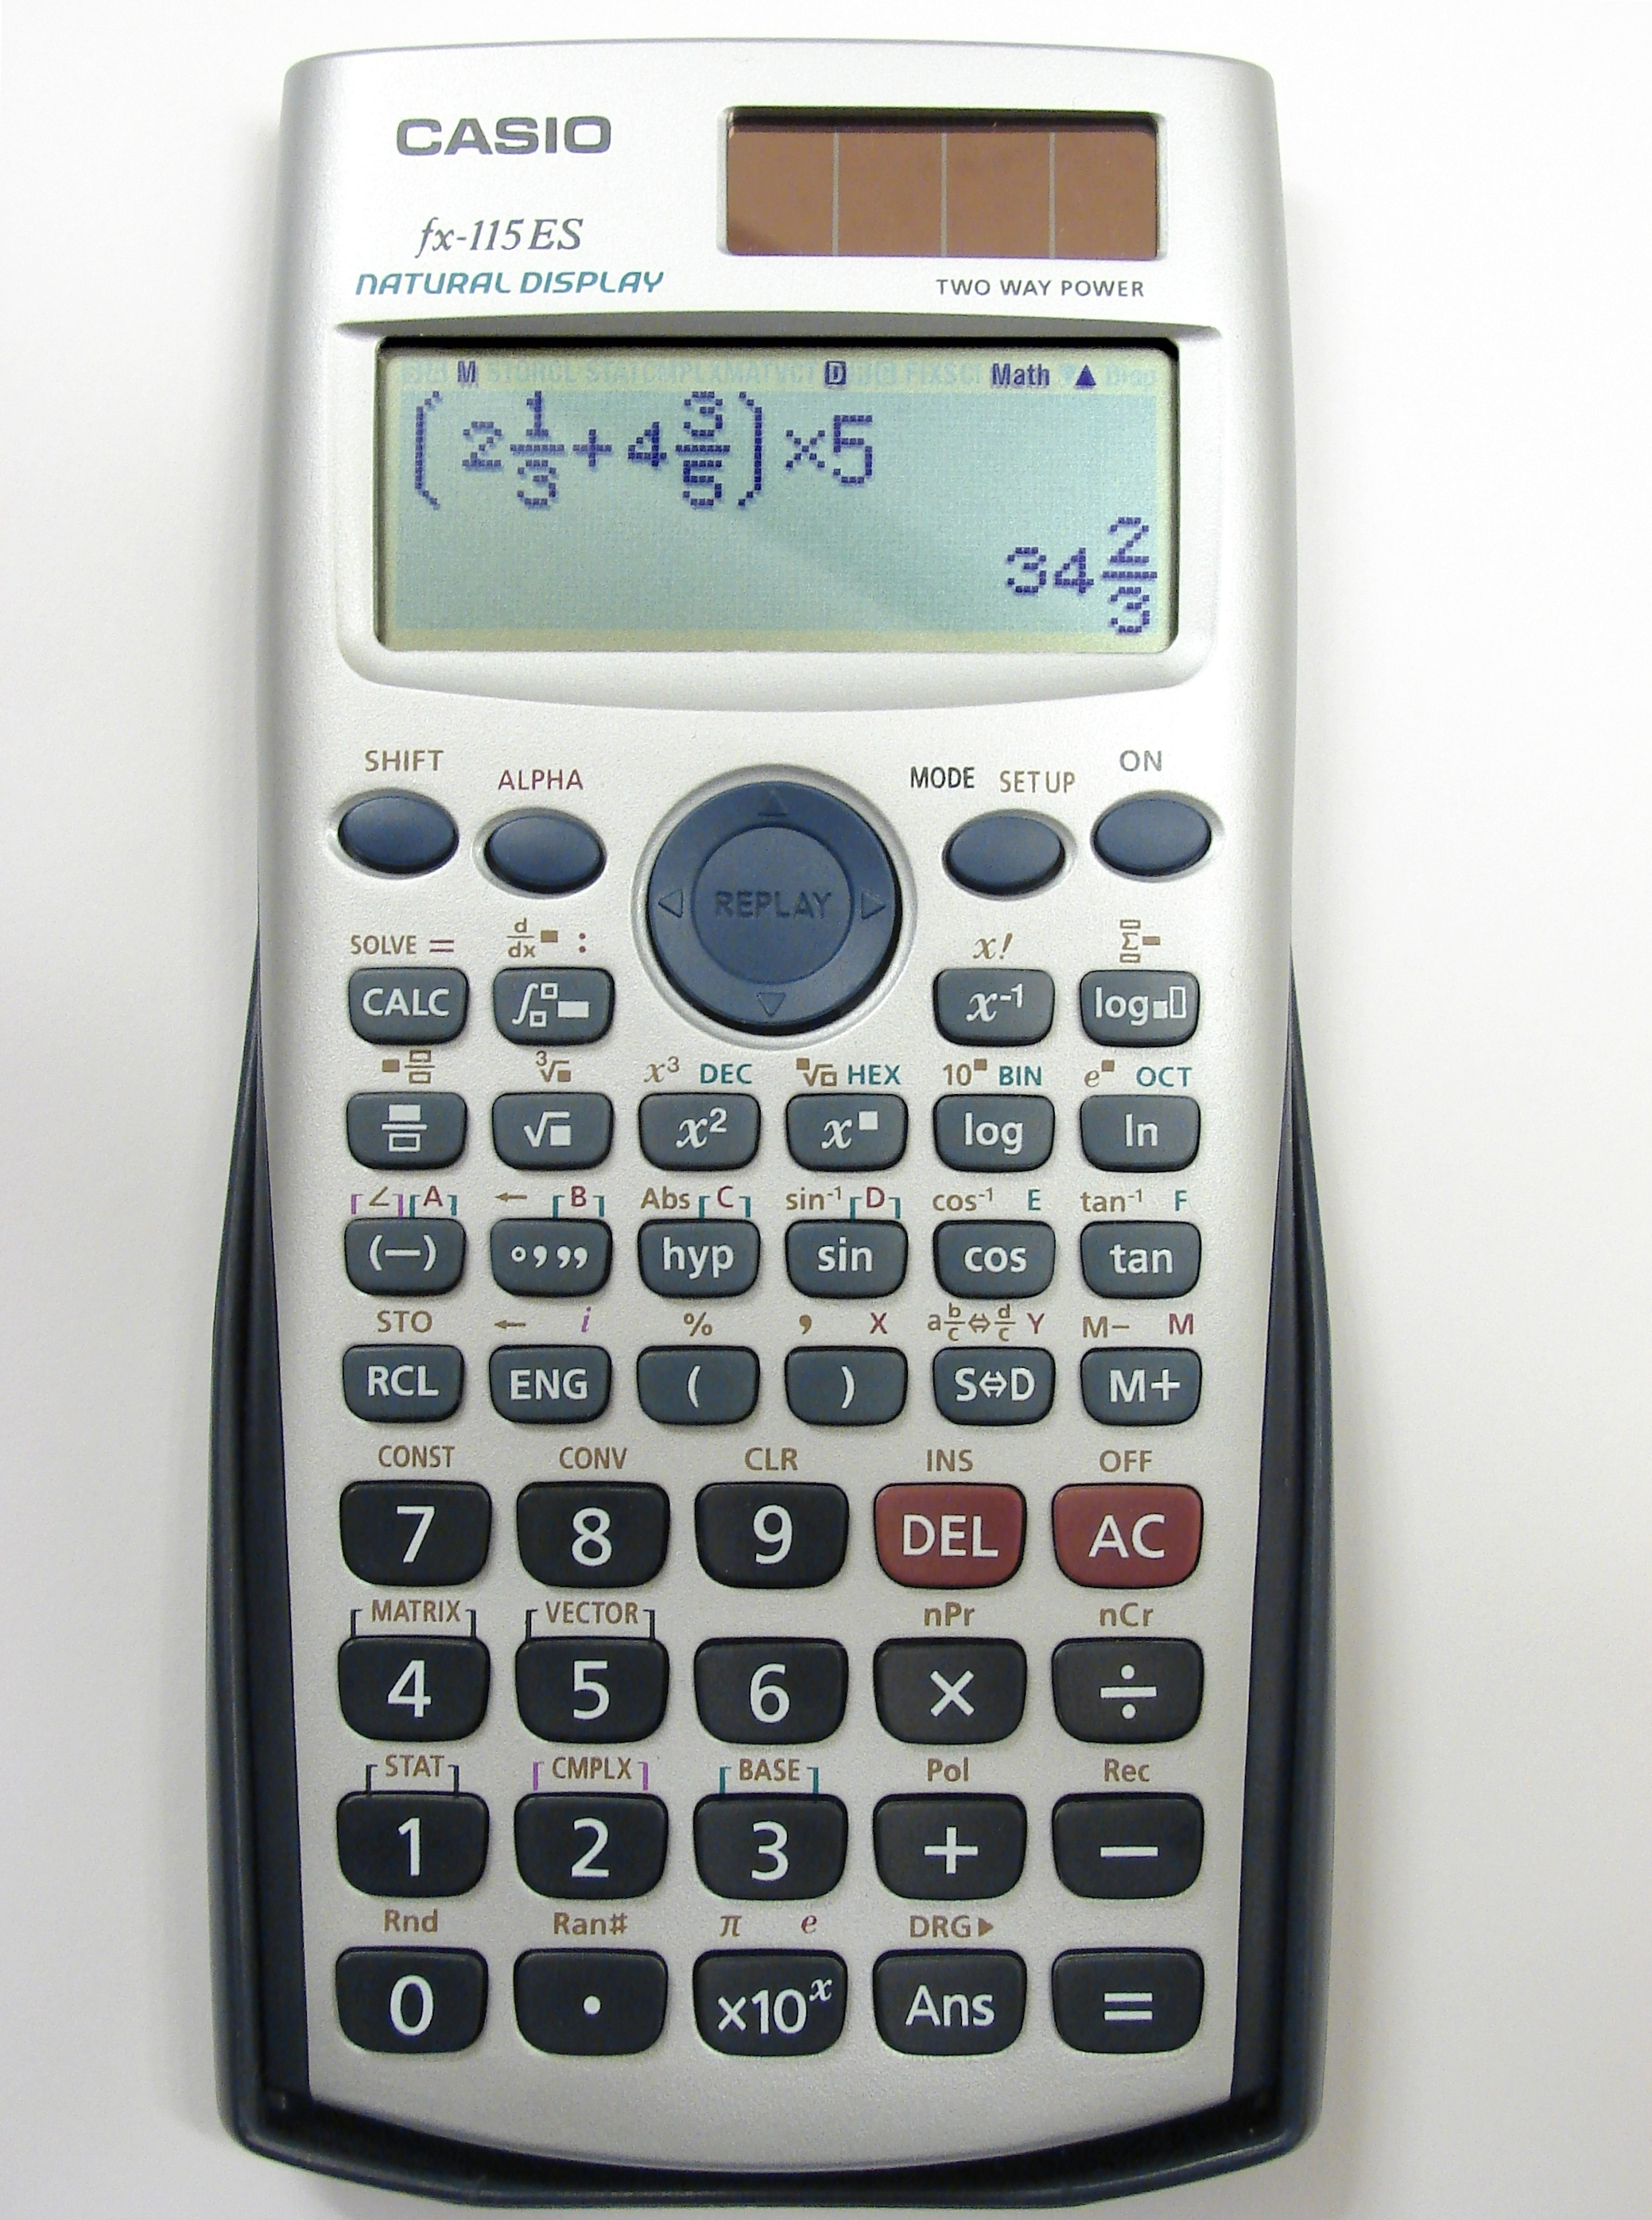 A modern scientific calculator with a dot matrix LCD display